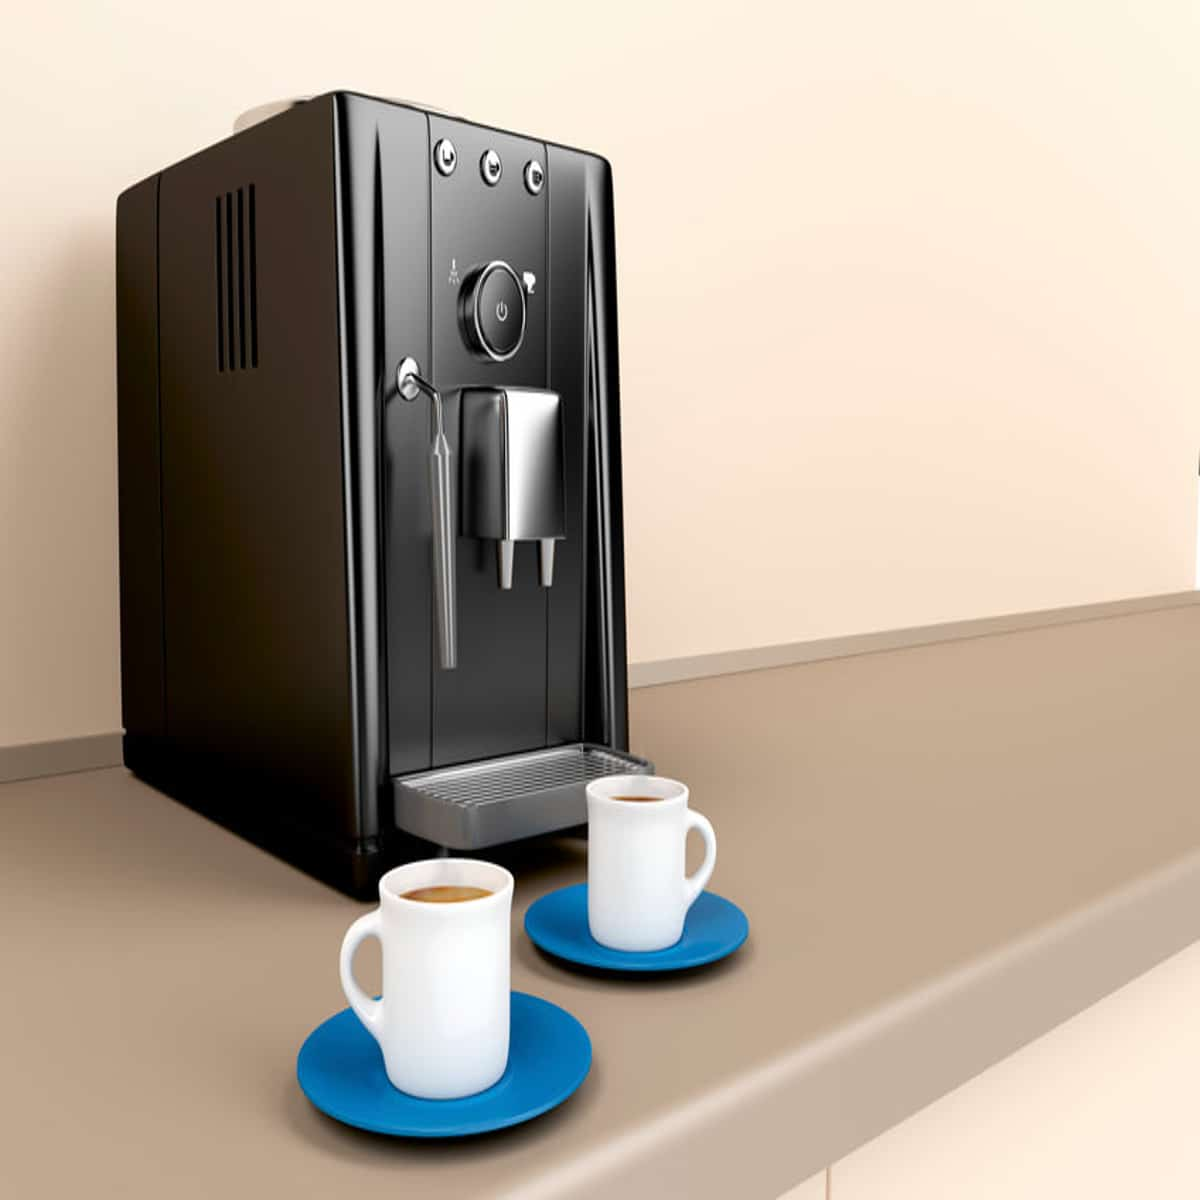 Automatic coffee machine and two espresso cafetière cups in the kitchen